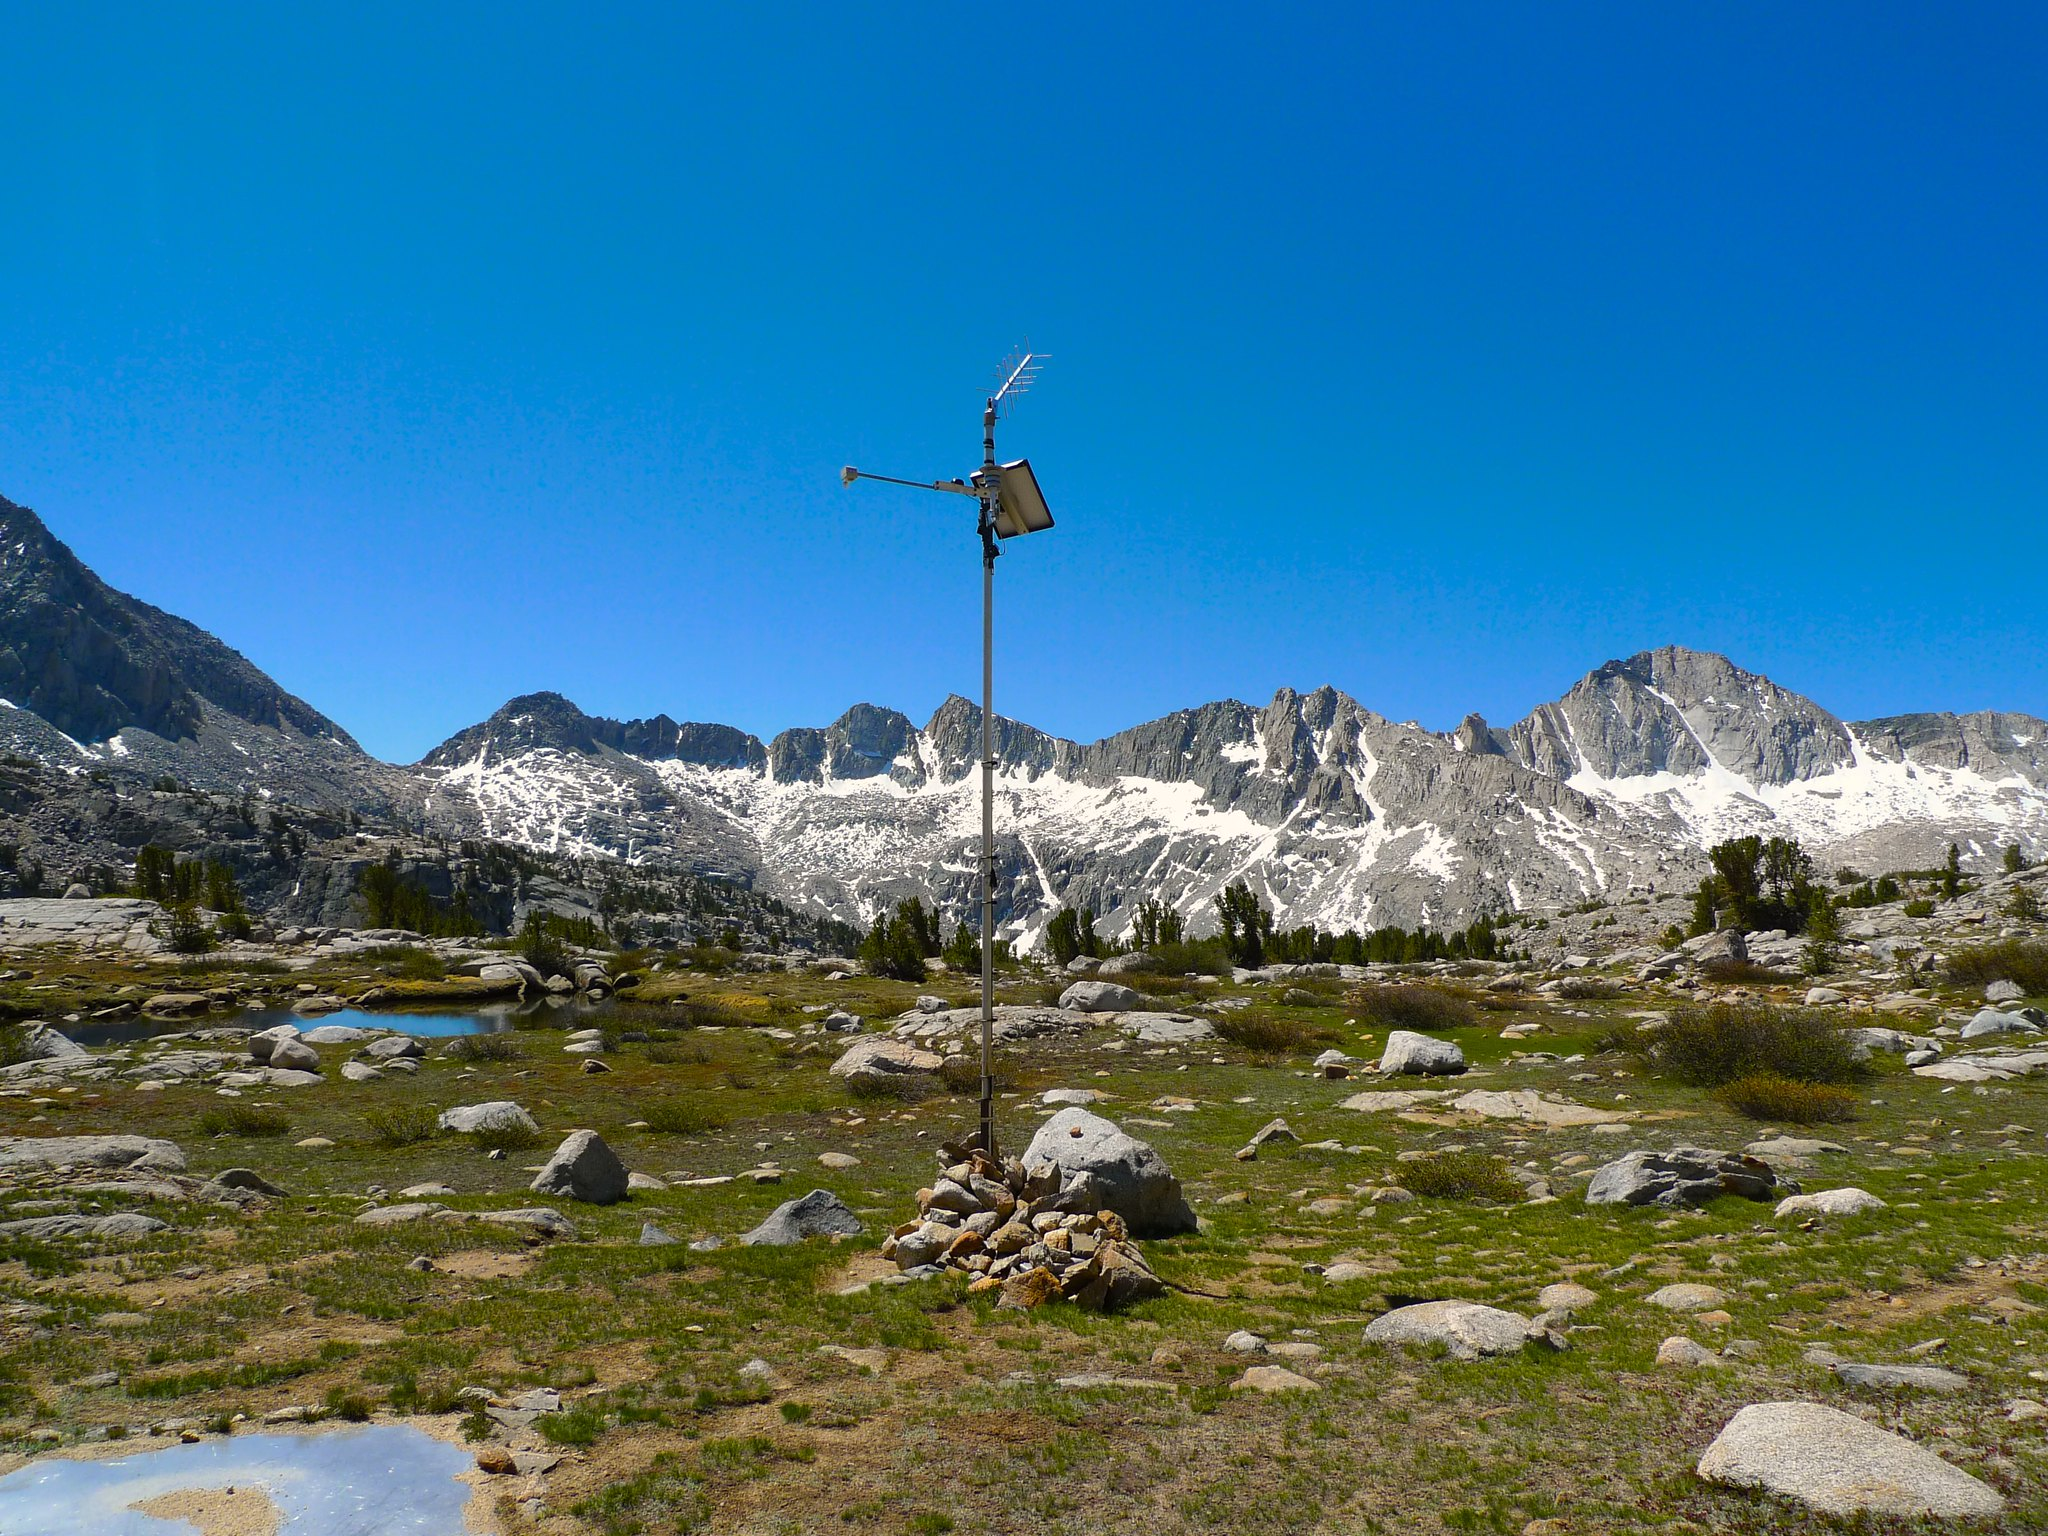 Snow measuring meter in Dusy Basin. This is a good place to turn off the trail if you're headed to Knapsack Pass